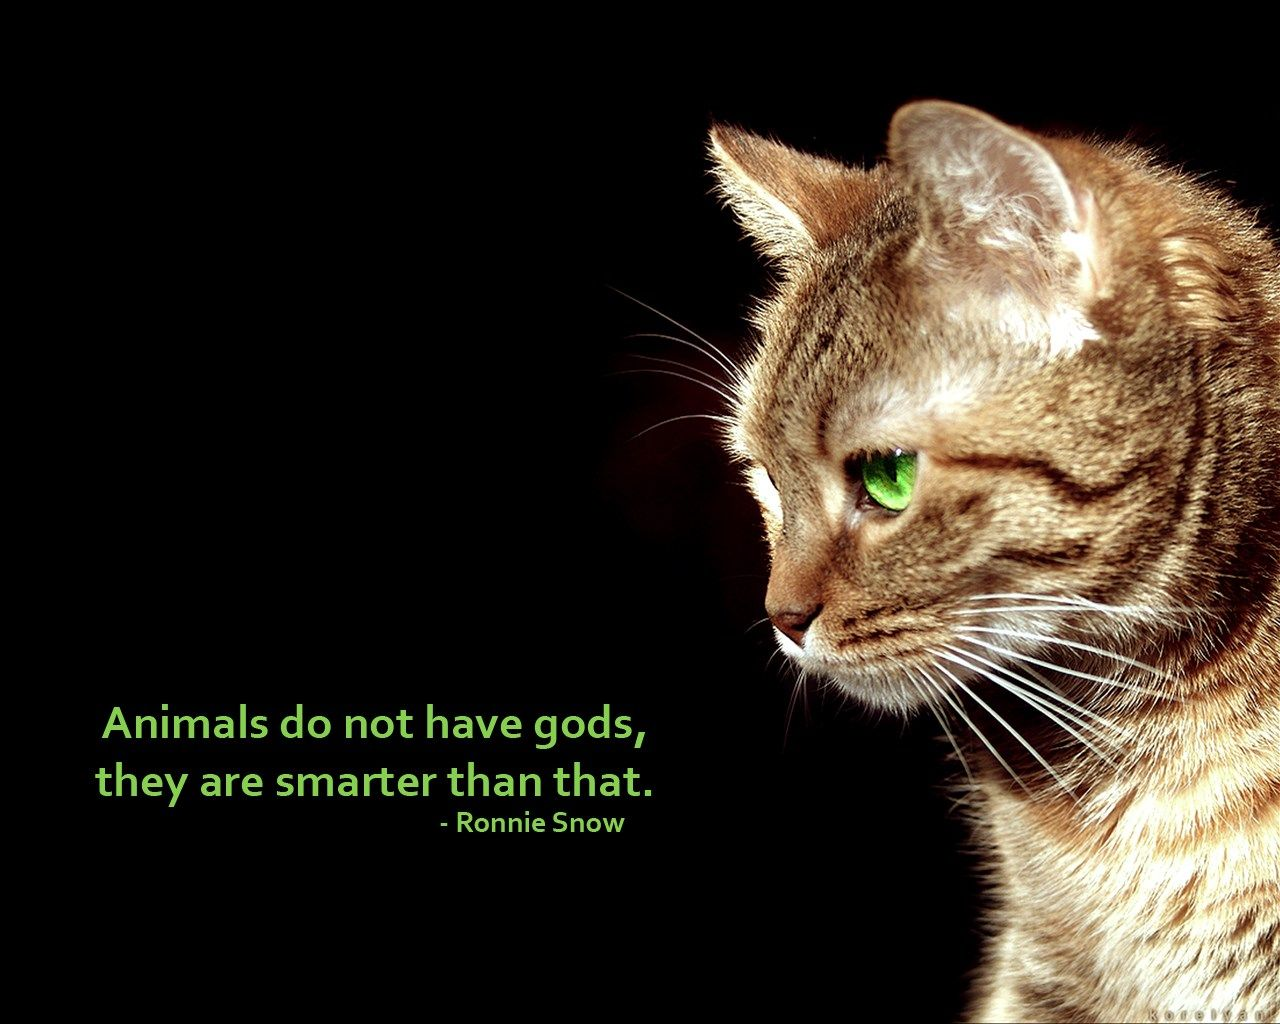 Animal Rights Quotes 20170326  Backgrounds High Resolution Anti Religious Pic